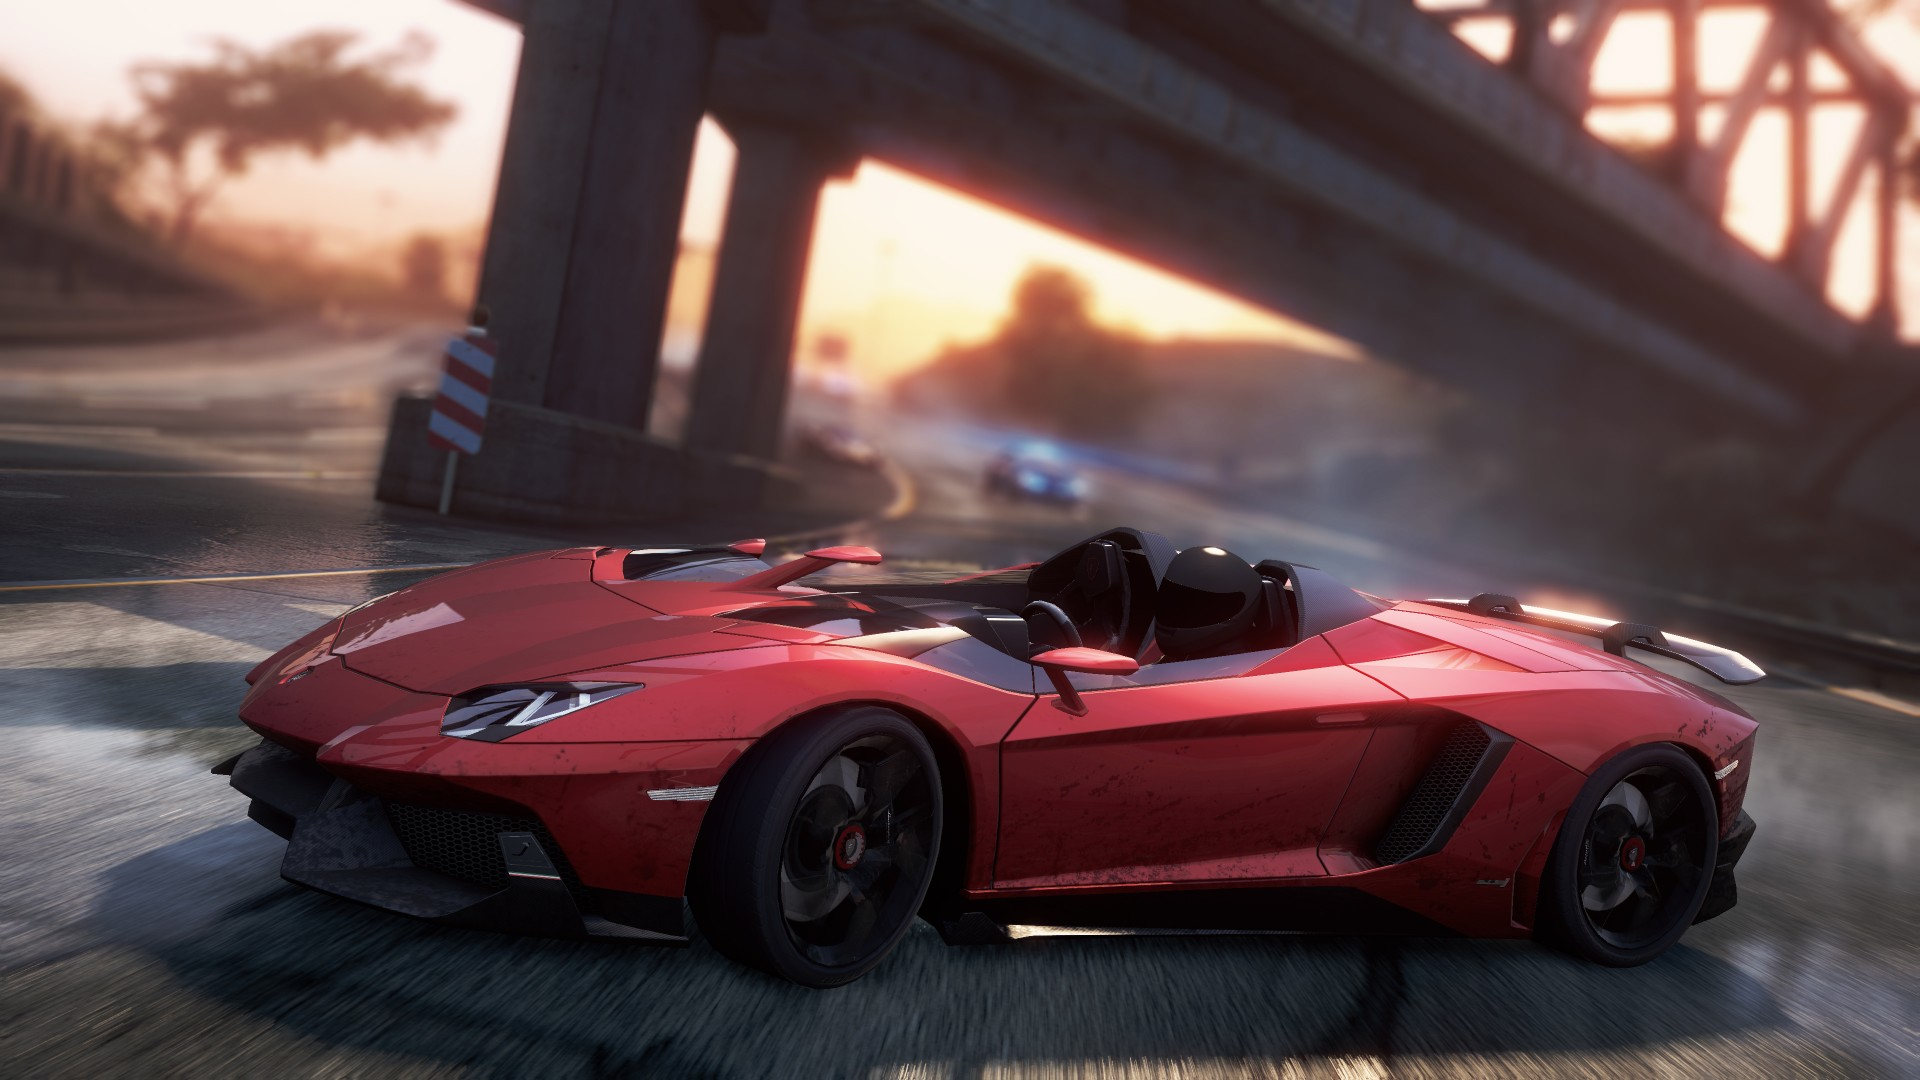 Fastest Car In The World Wallpaper Hd Sggaminginfo 187 Feel The Speed With Nfs Most Wanted